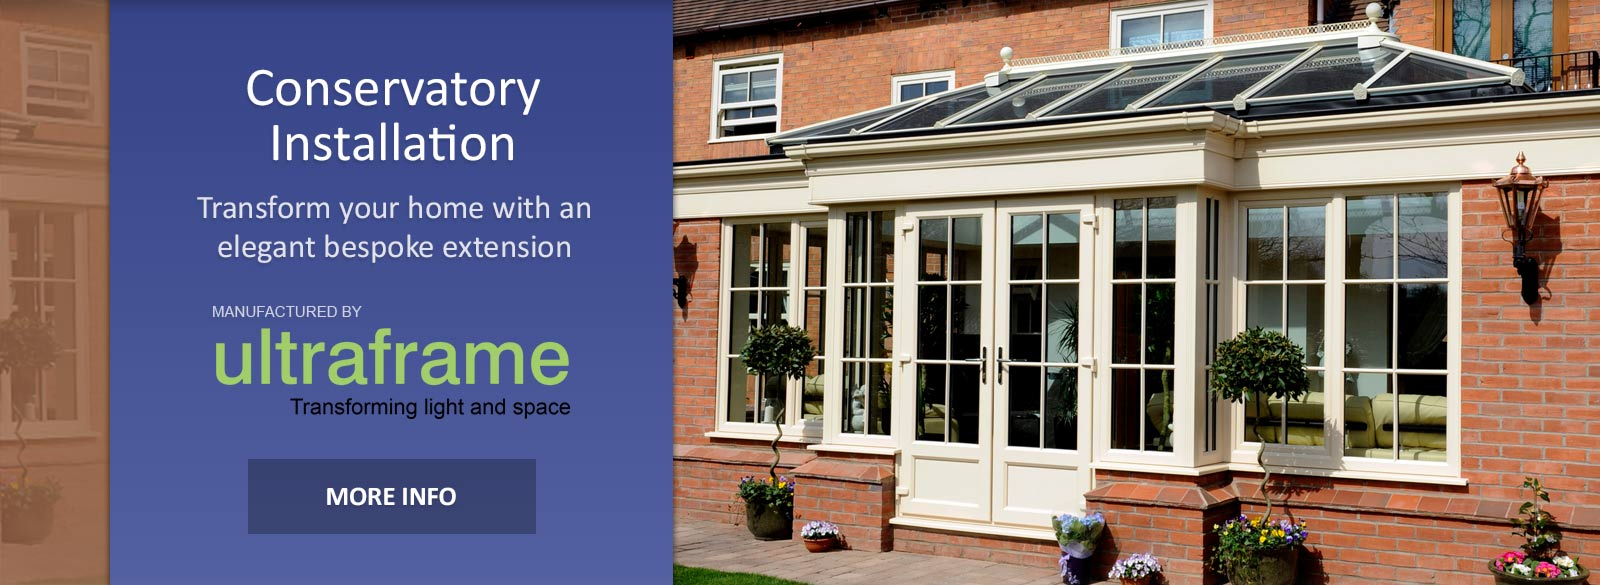 High quality modern brick conservatory